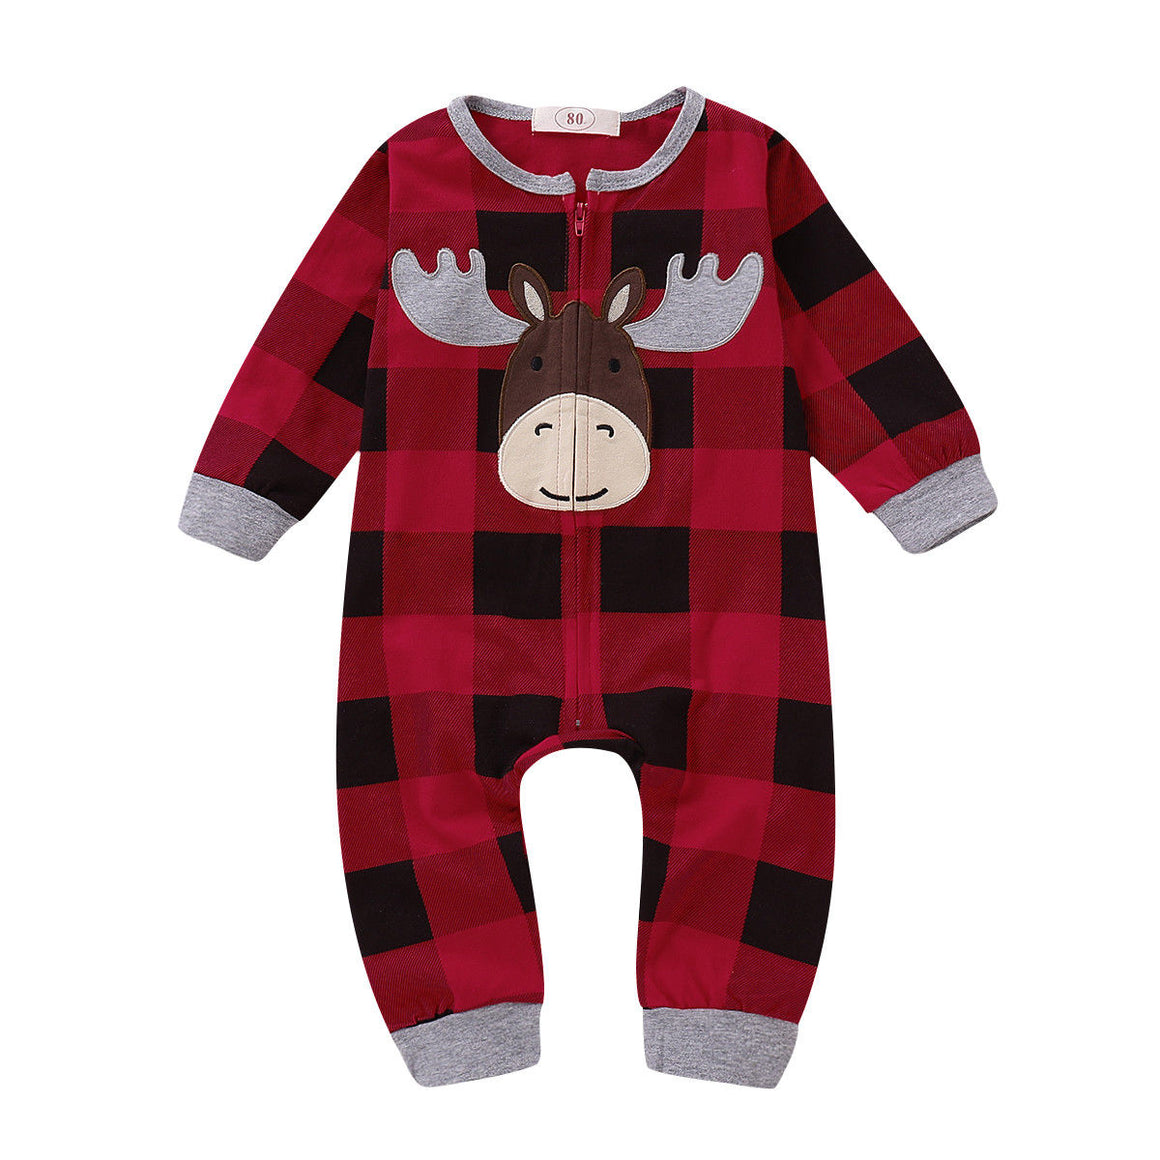 Plaid Reindeer Jumper